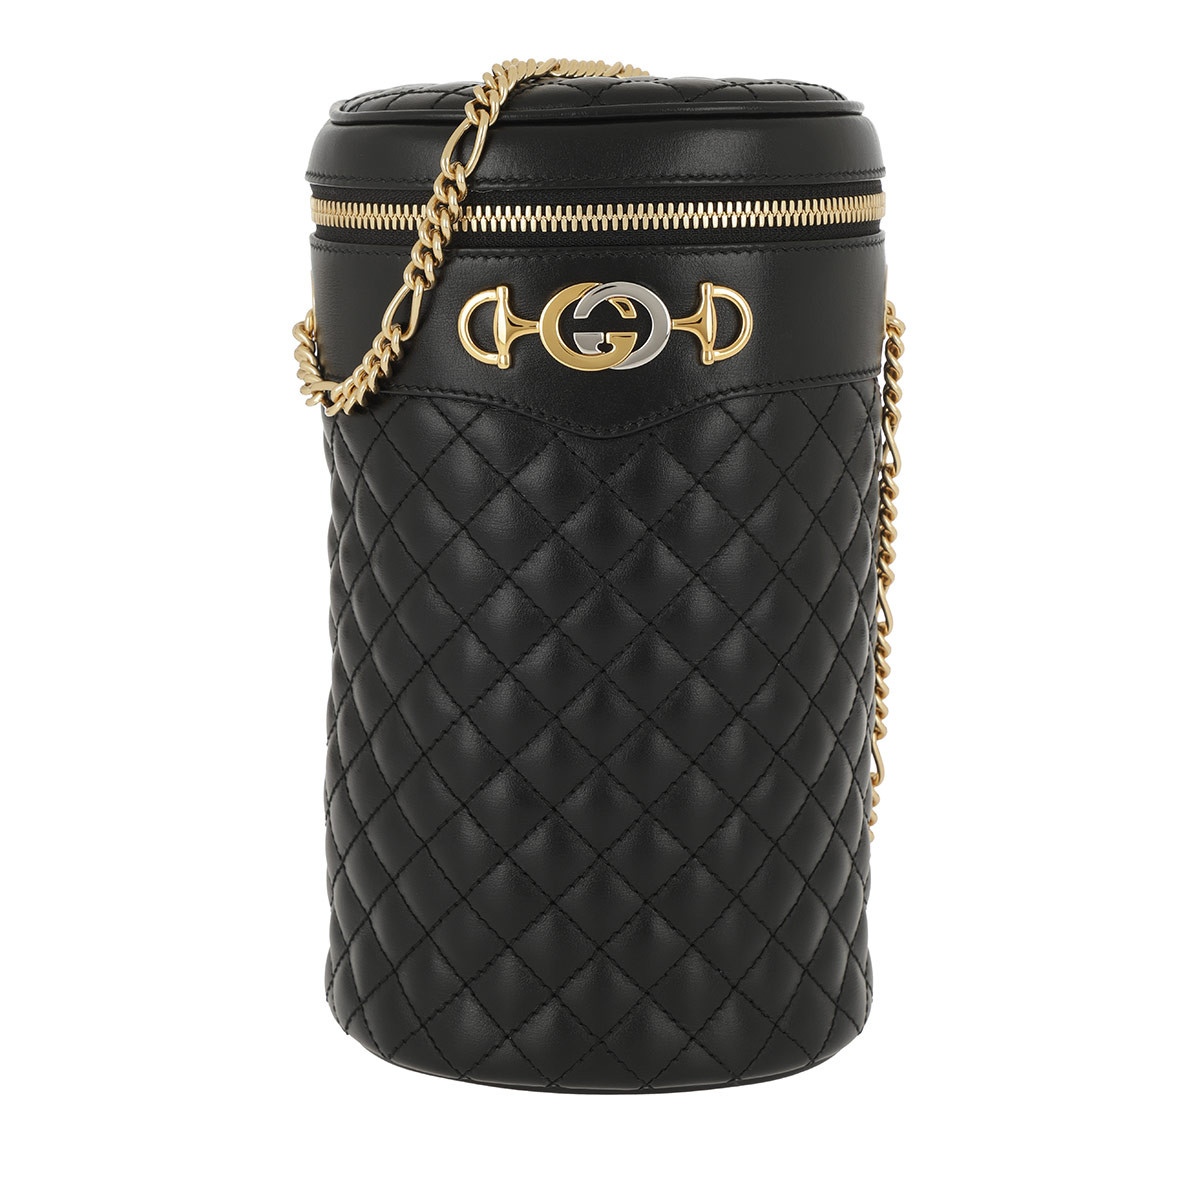 Gucci Beuteltasche - Belt Bag Quilted Leather Black/Black - in schwarz - für Damen